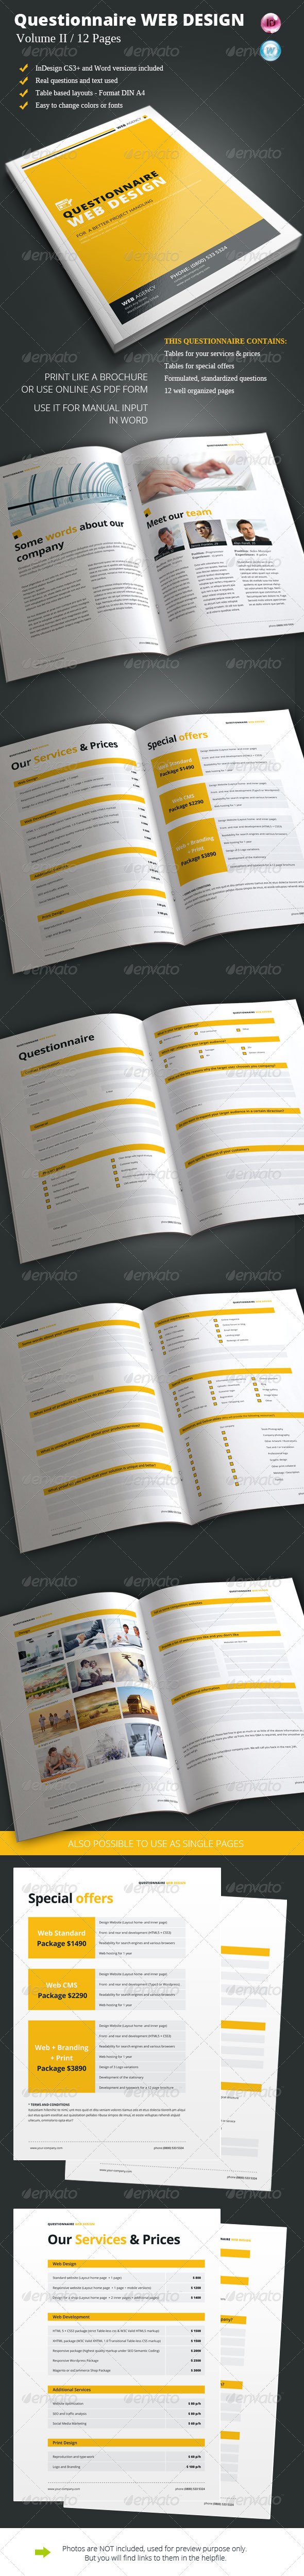 Questionnaire Web Design Vol. II - Informational Brochures